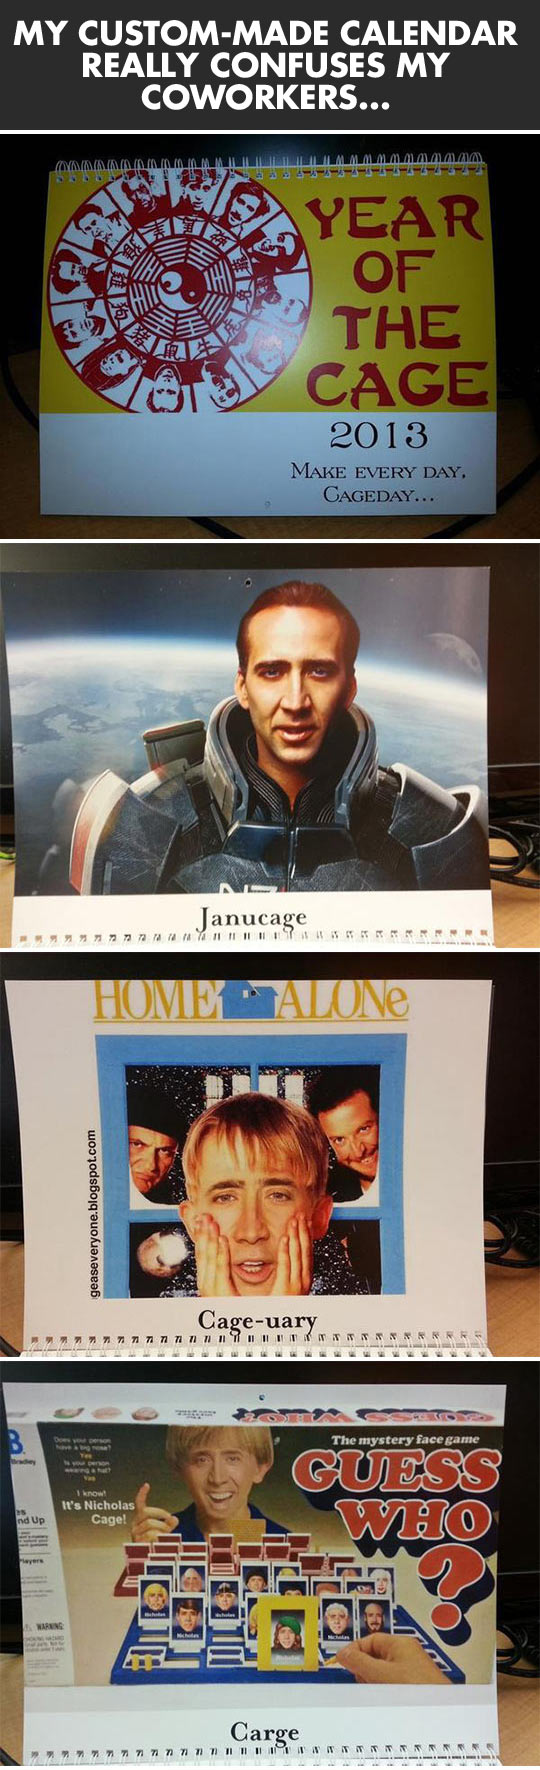 My custom-made calendar really confuses my coworkers...